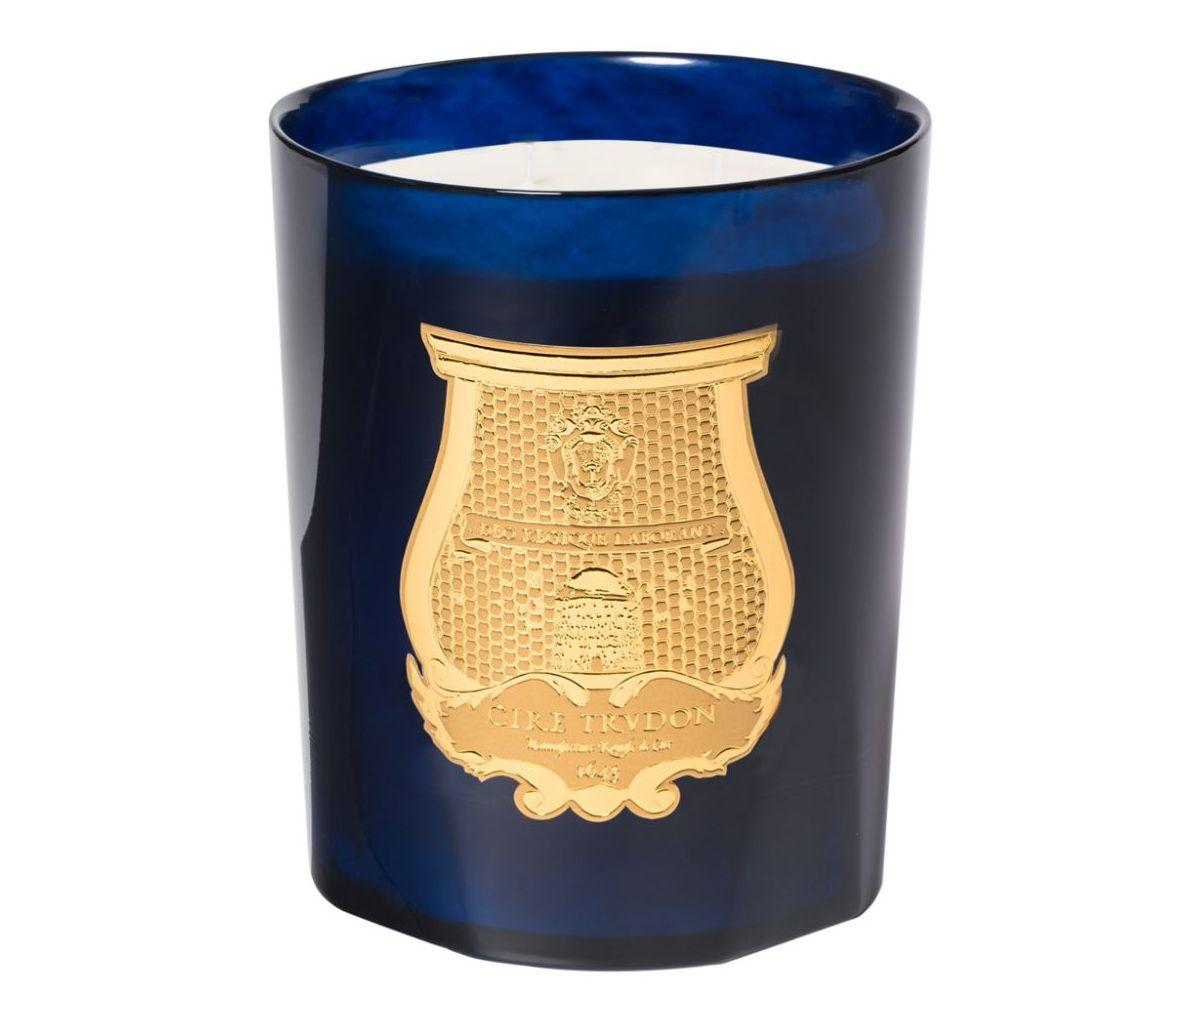 The 3 kg Cire Trudon Les Belles Matières Reggio candle is a wonderfully worthy indulgence : Luxurylaunches